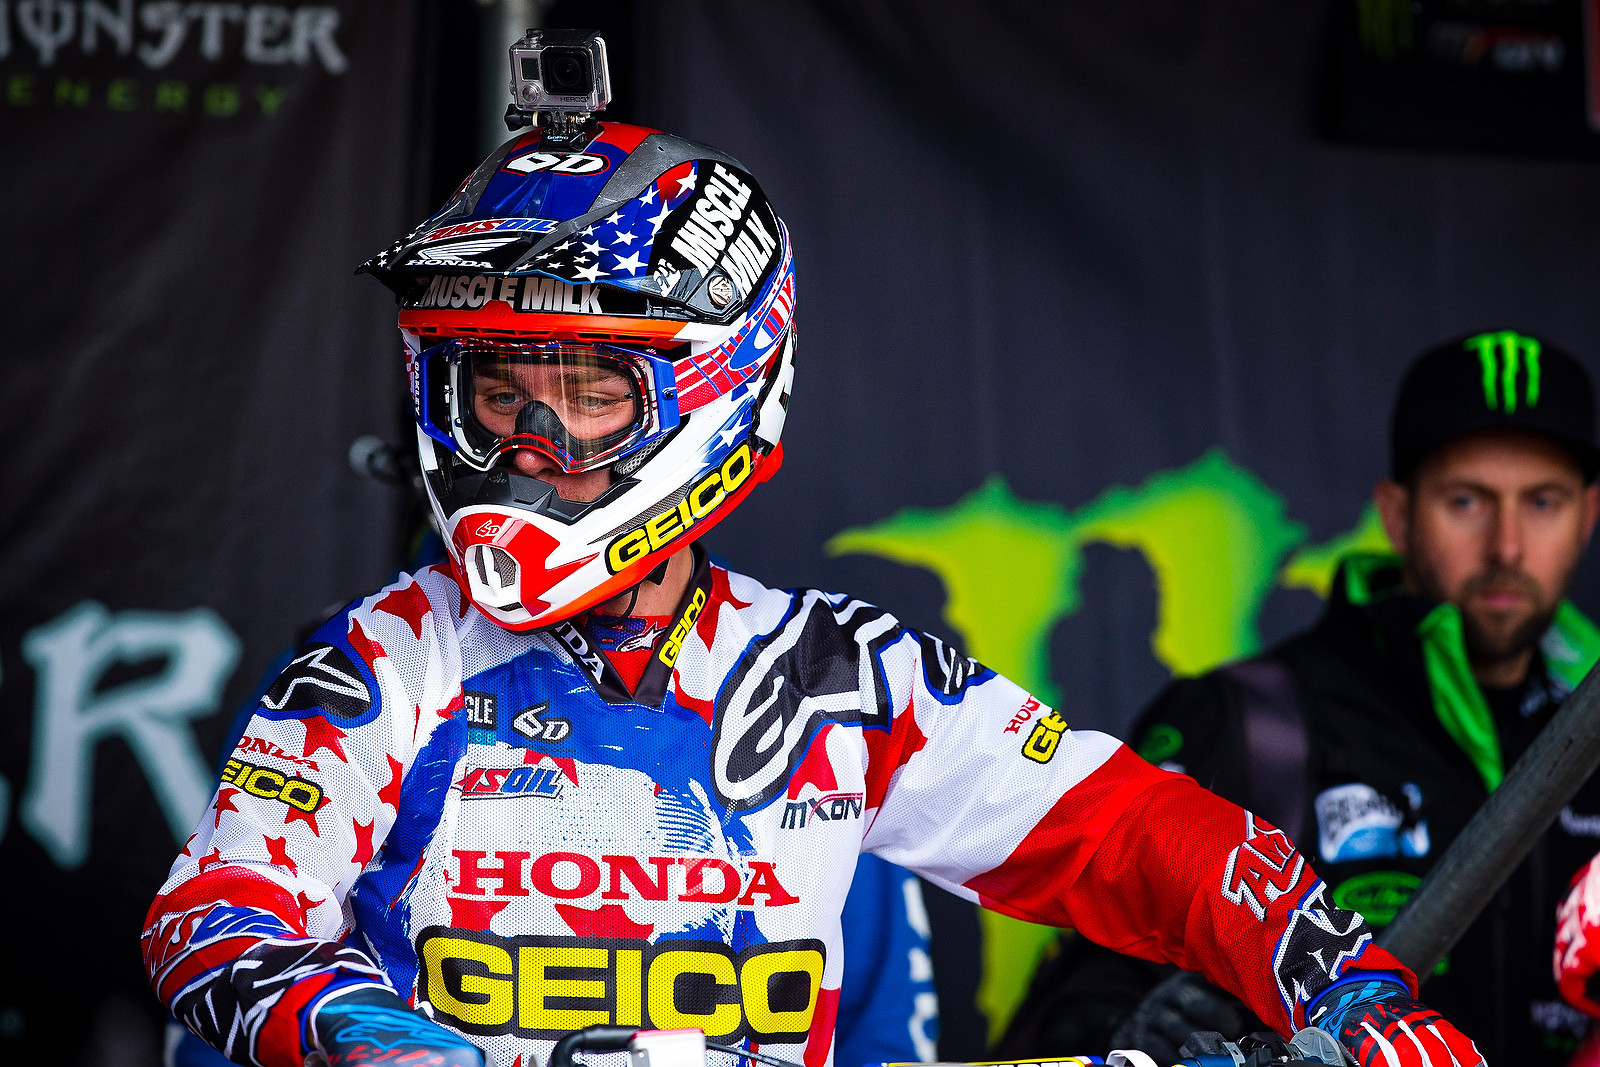 Game Face - kardy - Motocross Pictures - Vital MX